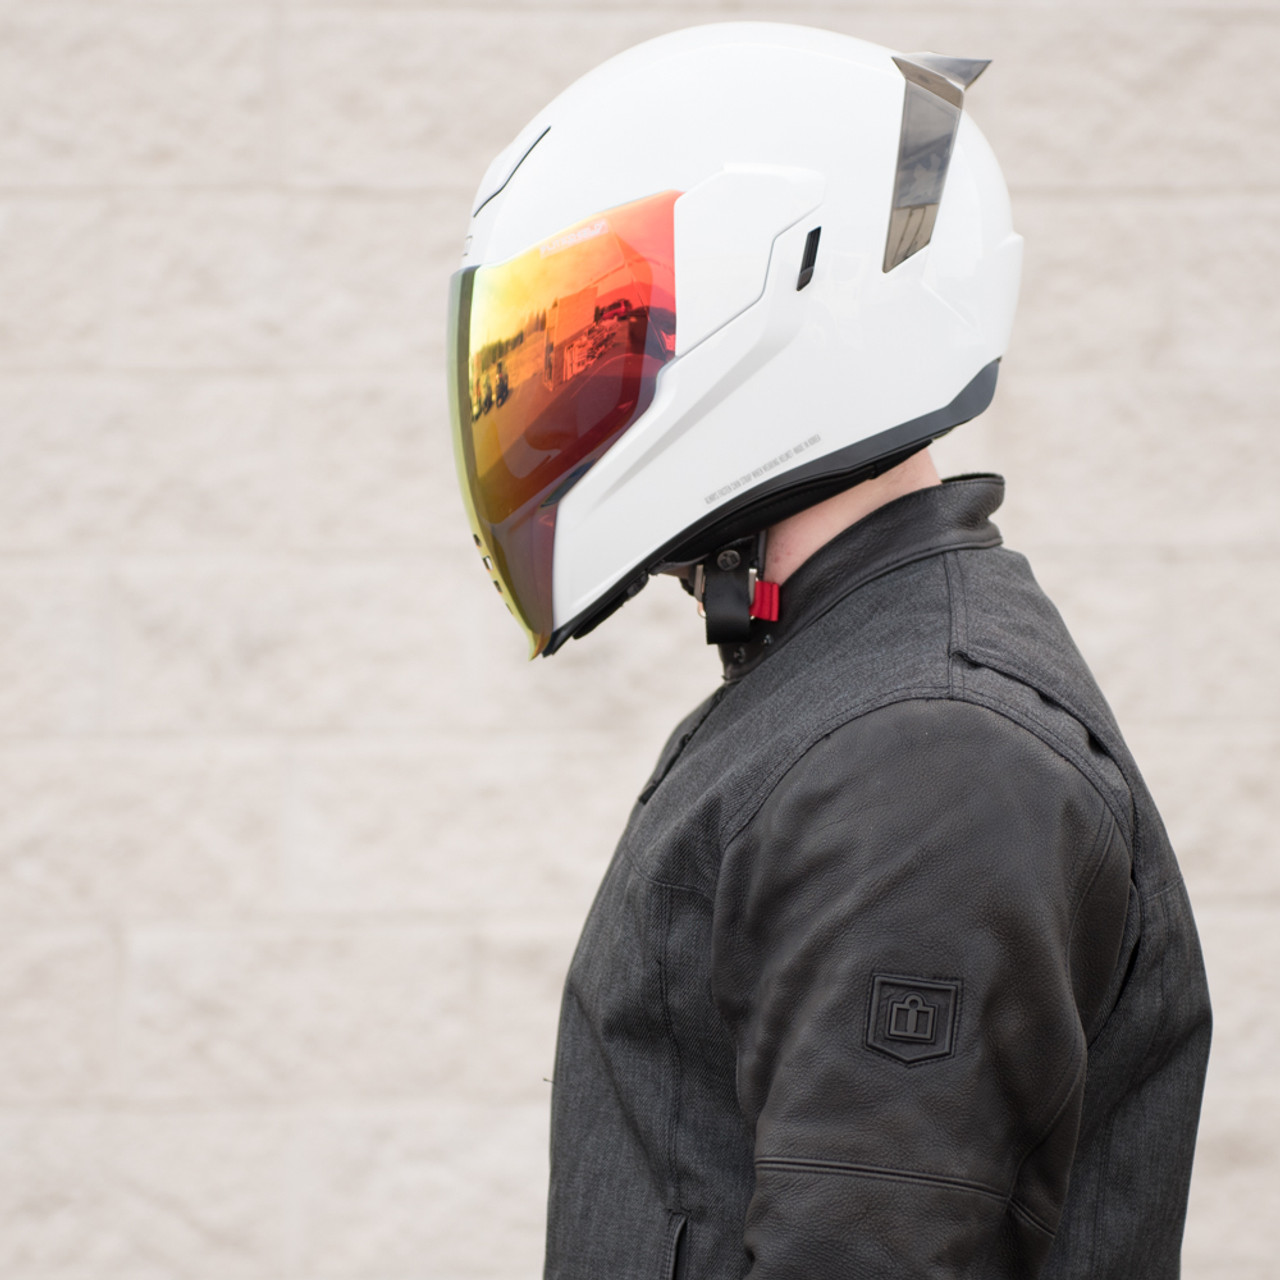 66b841e1 Icon Airflite RST Red Motorcycle Face Shield - 0130-0783 - Get ...